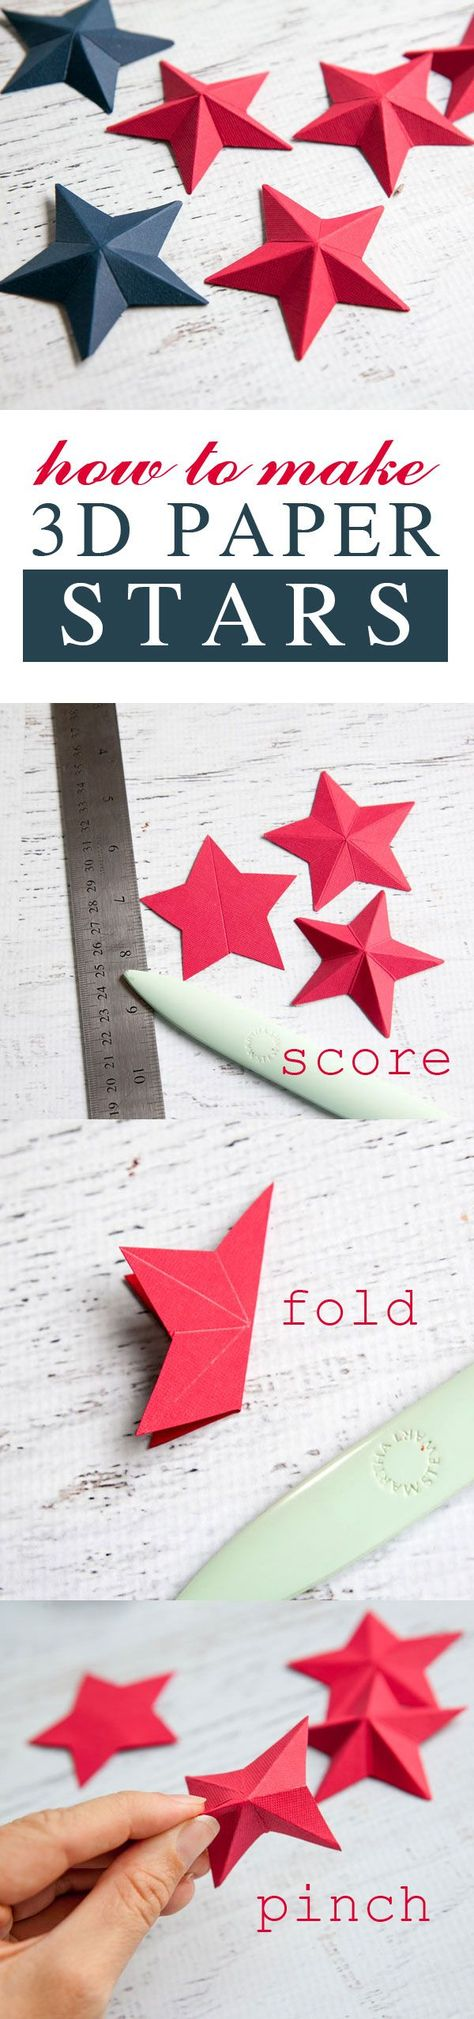 How to make 3D paper stars: start with a star shape, score five times along the points, fold in half along each of the scores, then pinch the ends to make them 3D. Super easy, and super cute!